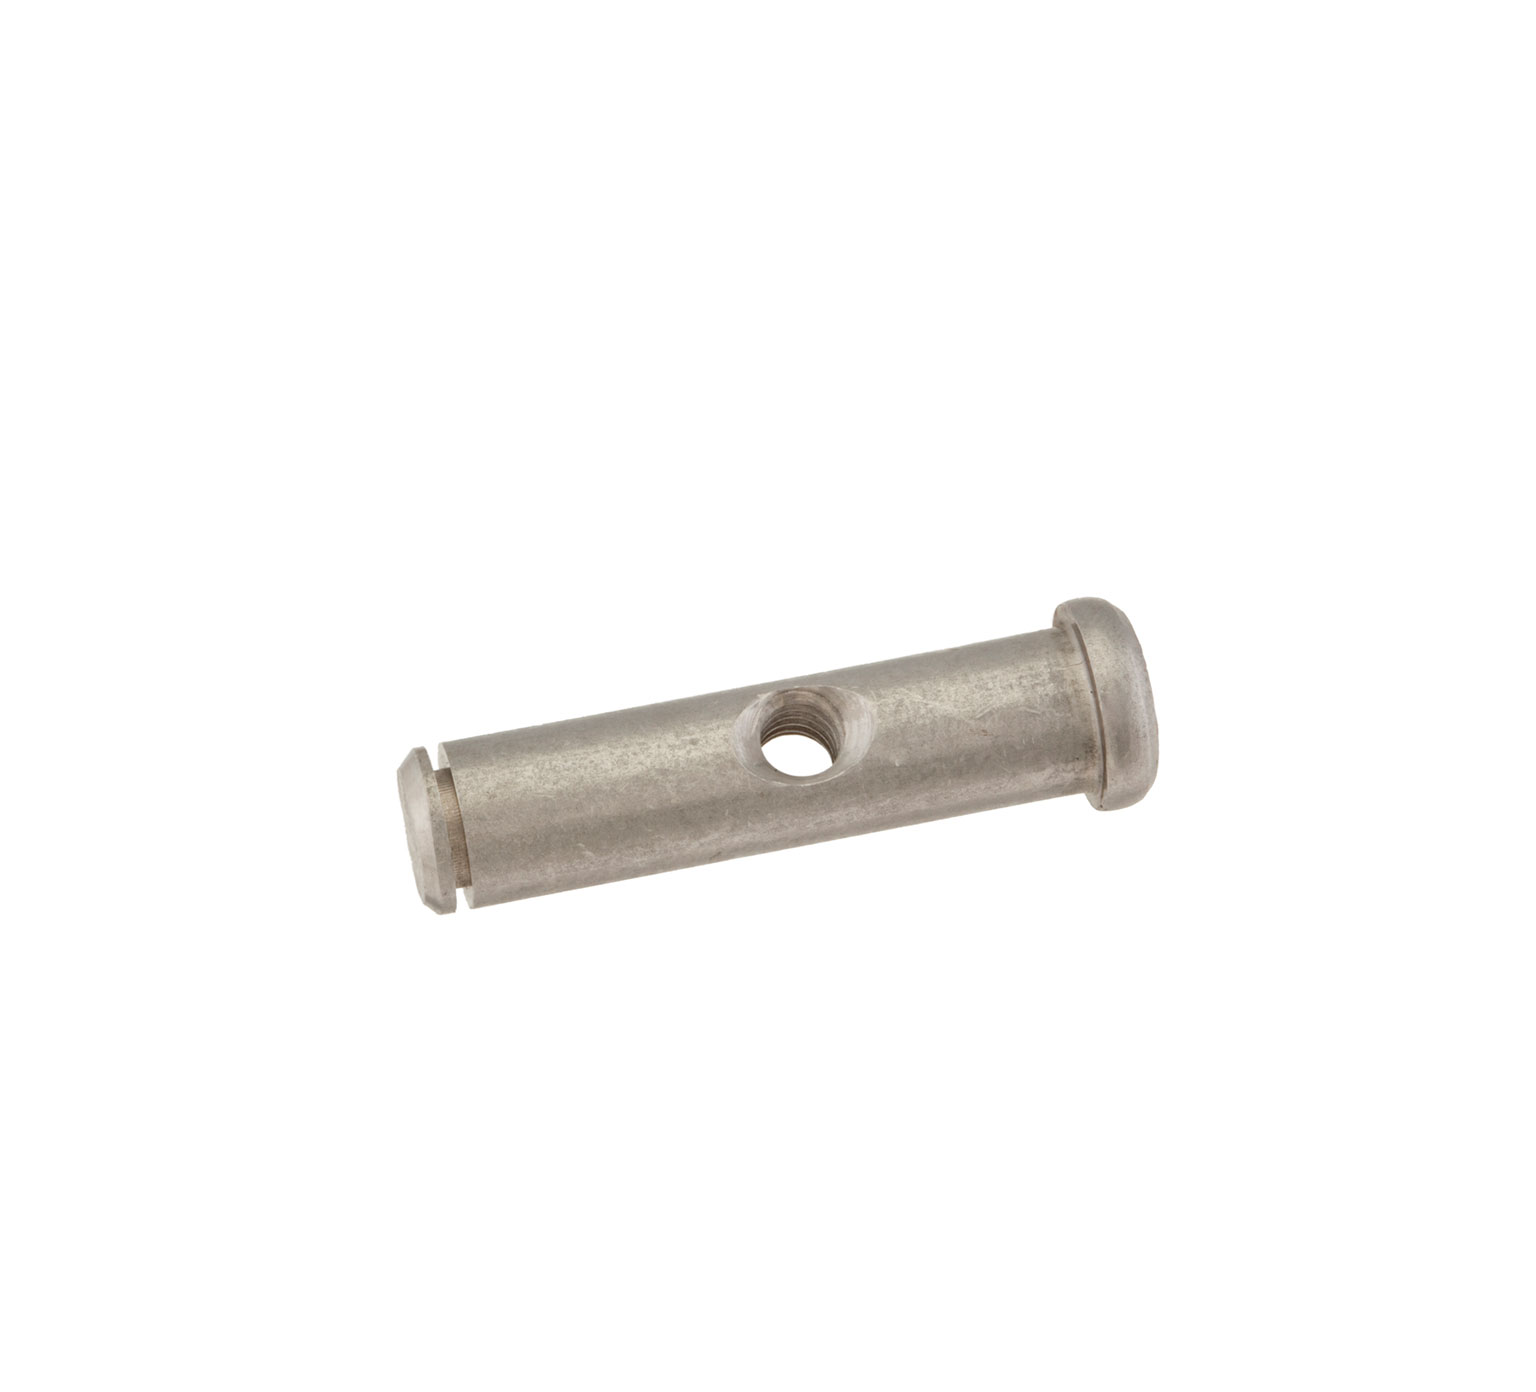 21603 Stainless Steel Pin - 1.92 x 0.56 in alt 1